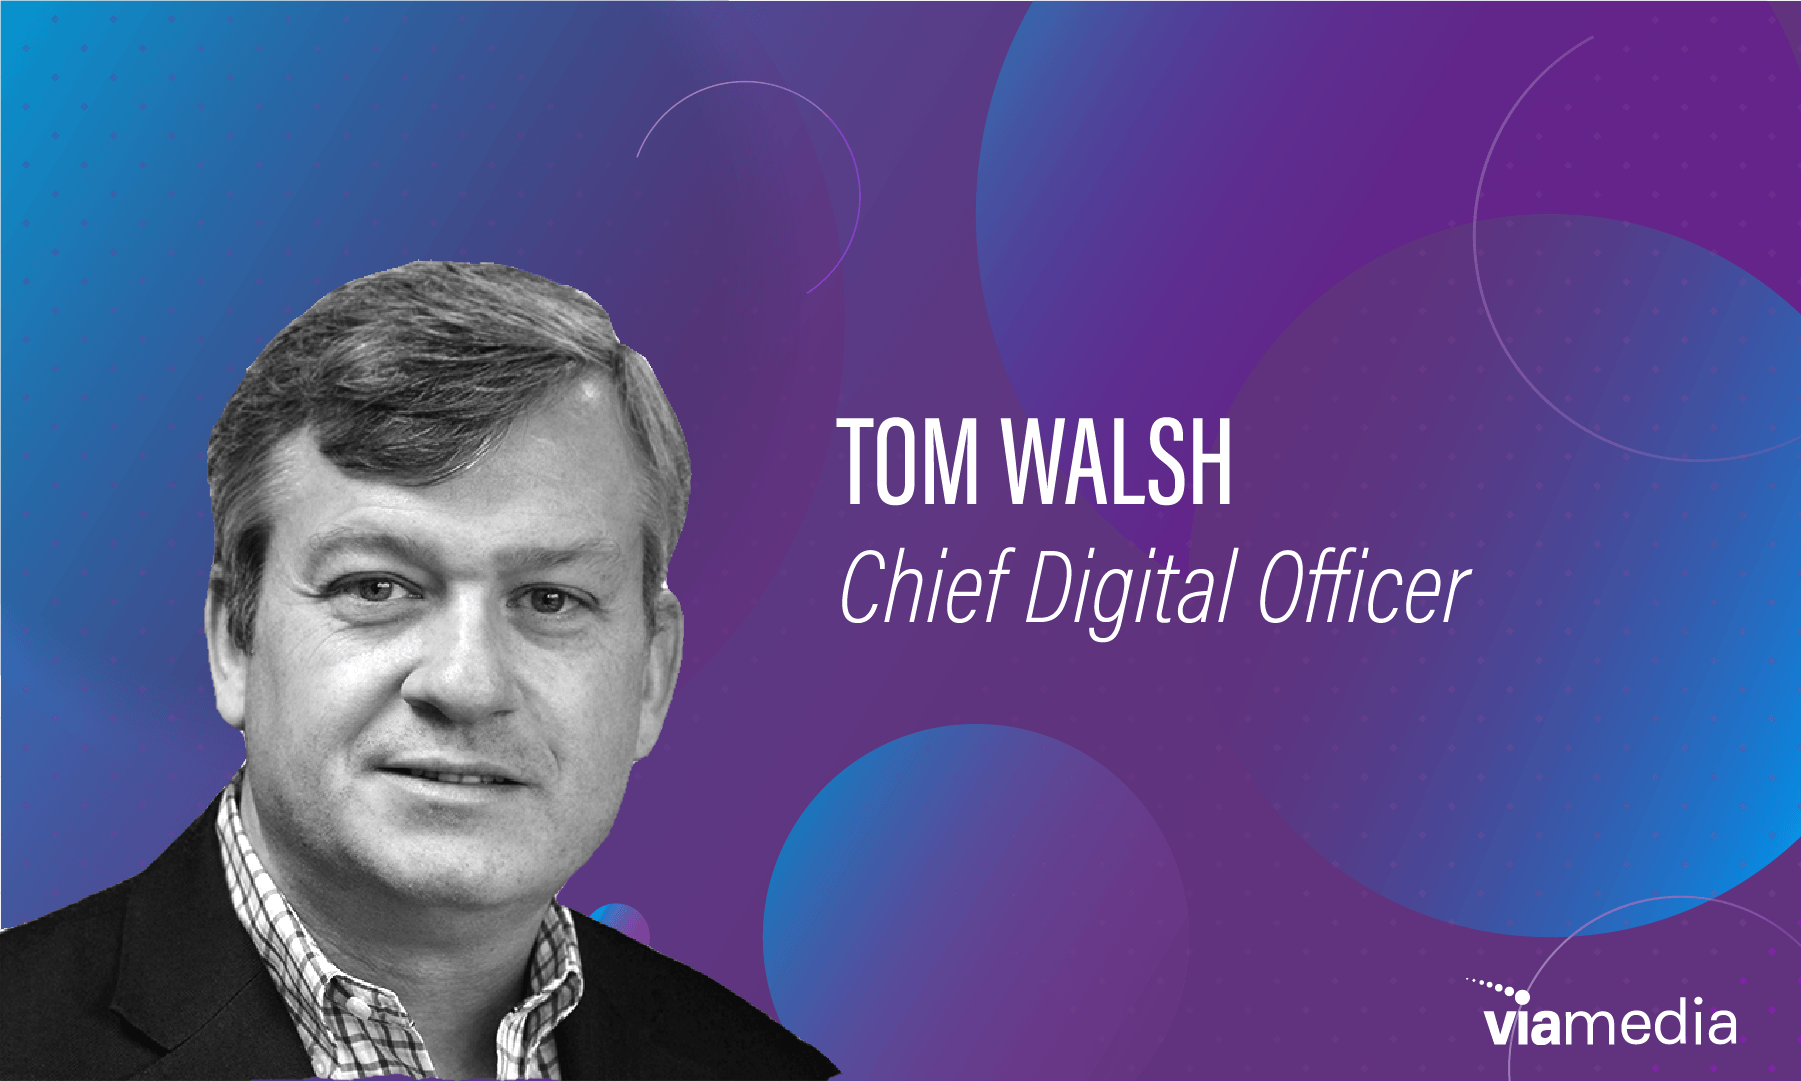 Tom Walsh, Chief Digital Officer@2x-8-1